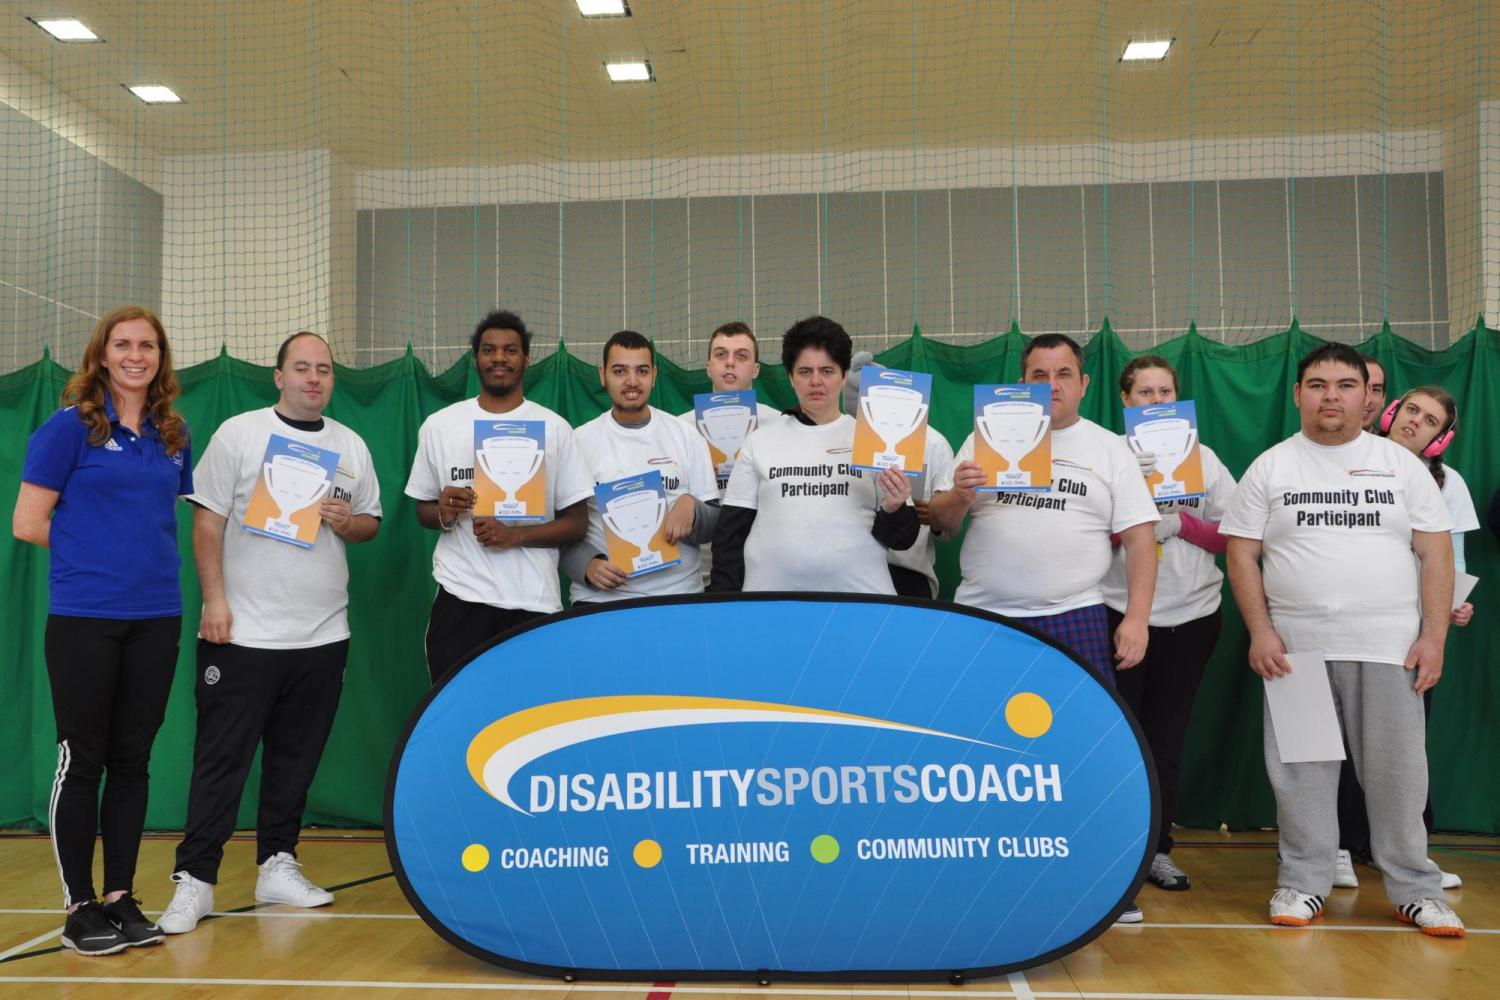 Disability Sports Coach Community Club Kensington & Chelsea